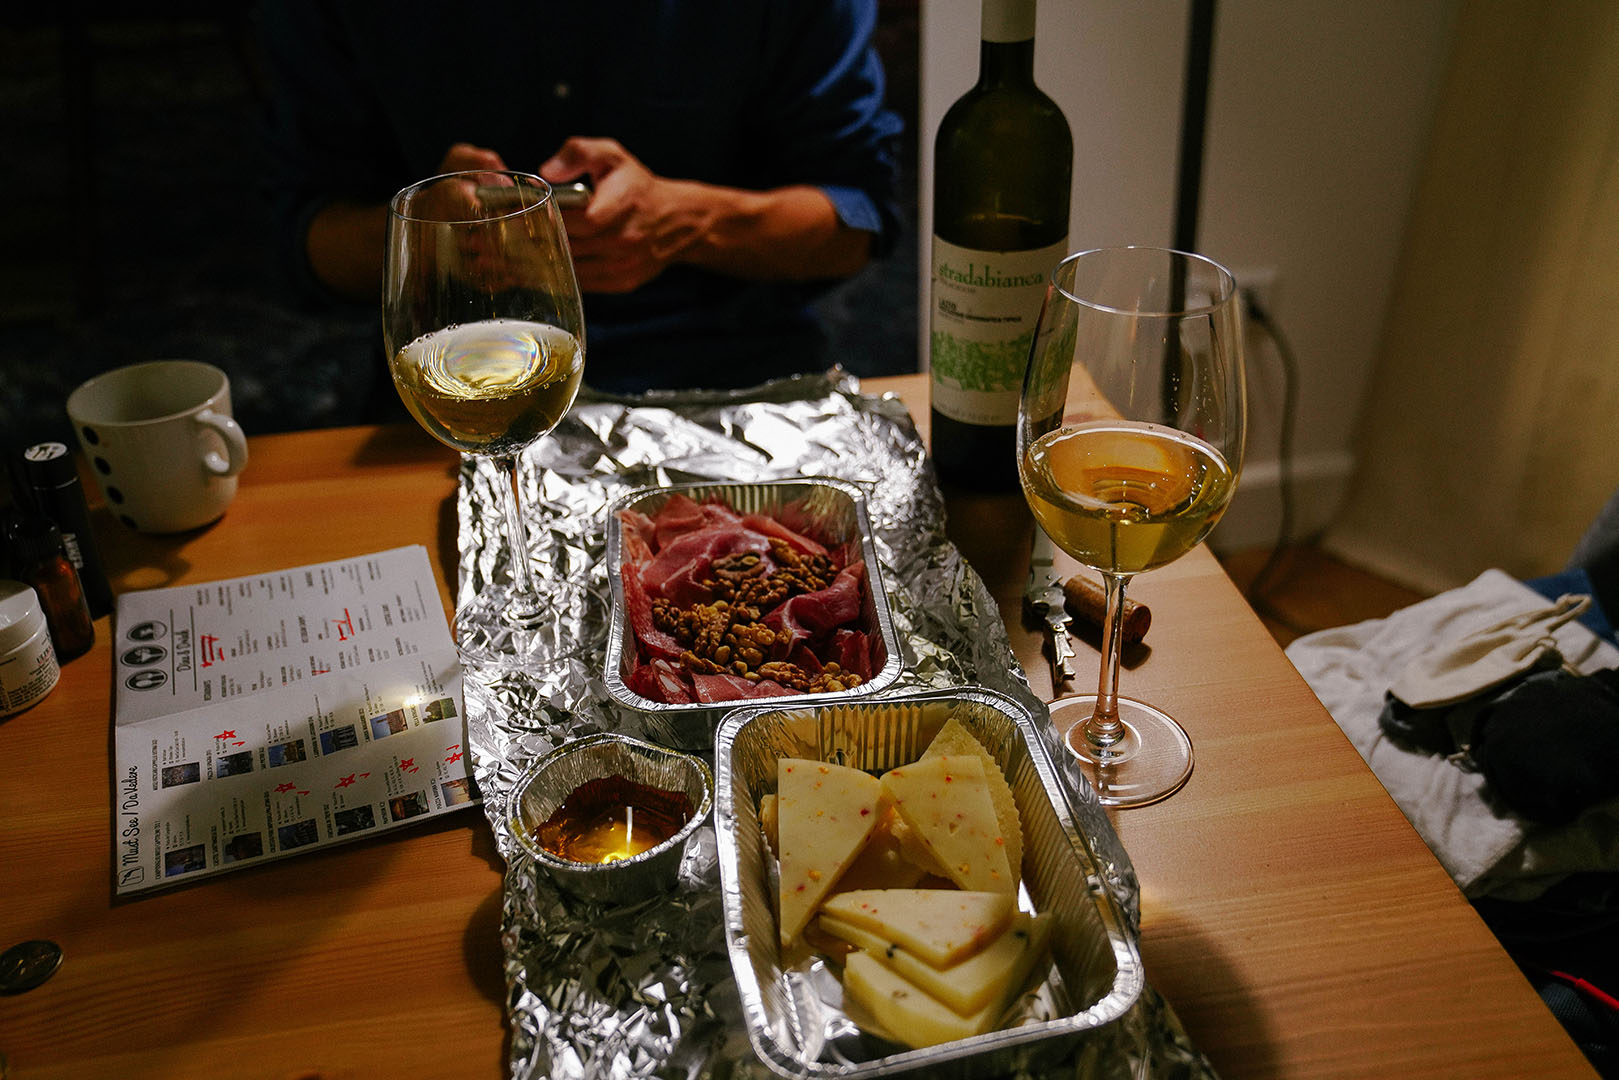 The BEST Meat & Cheese Plate (Charcuterie) Take Away we had in our Airbnb.